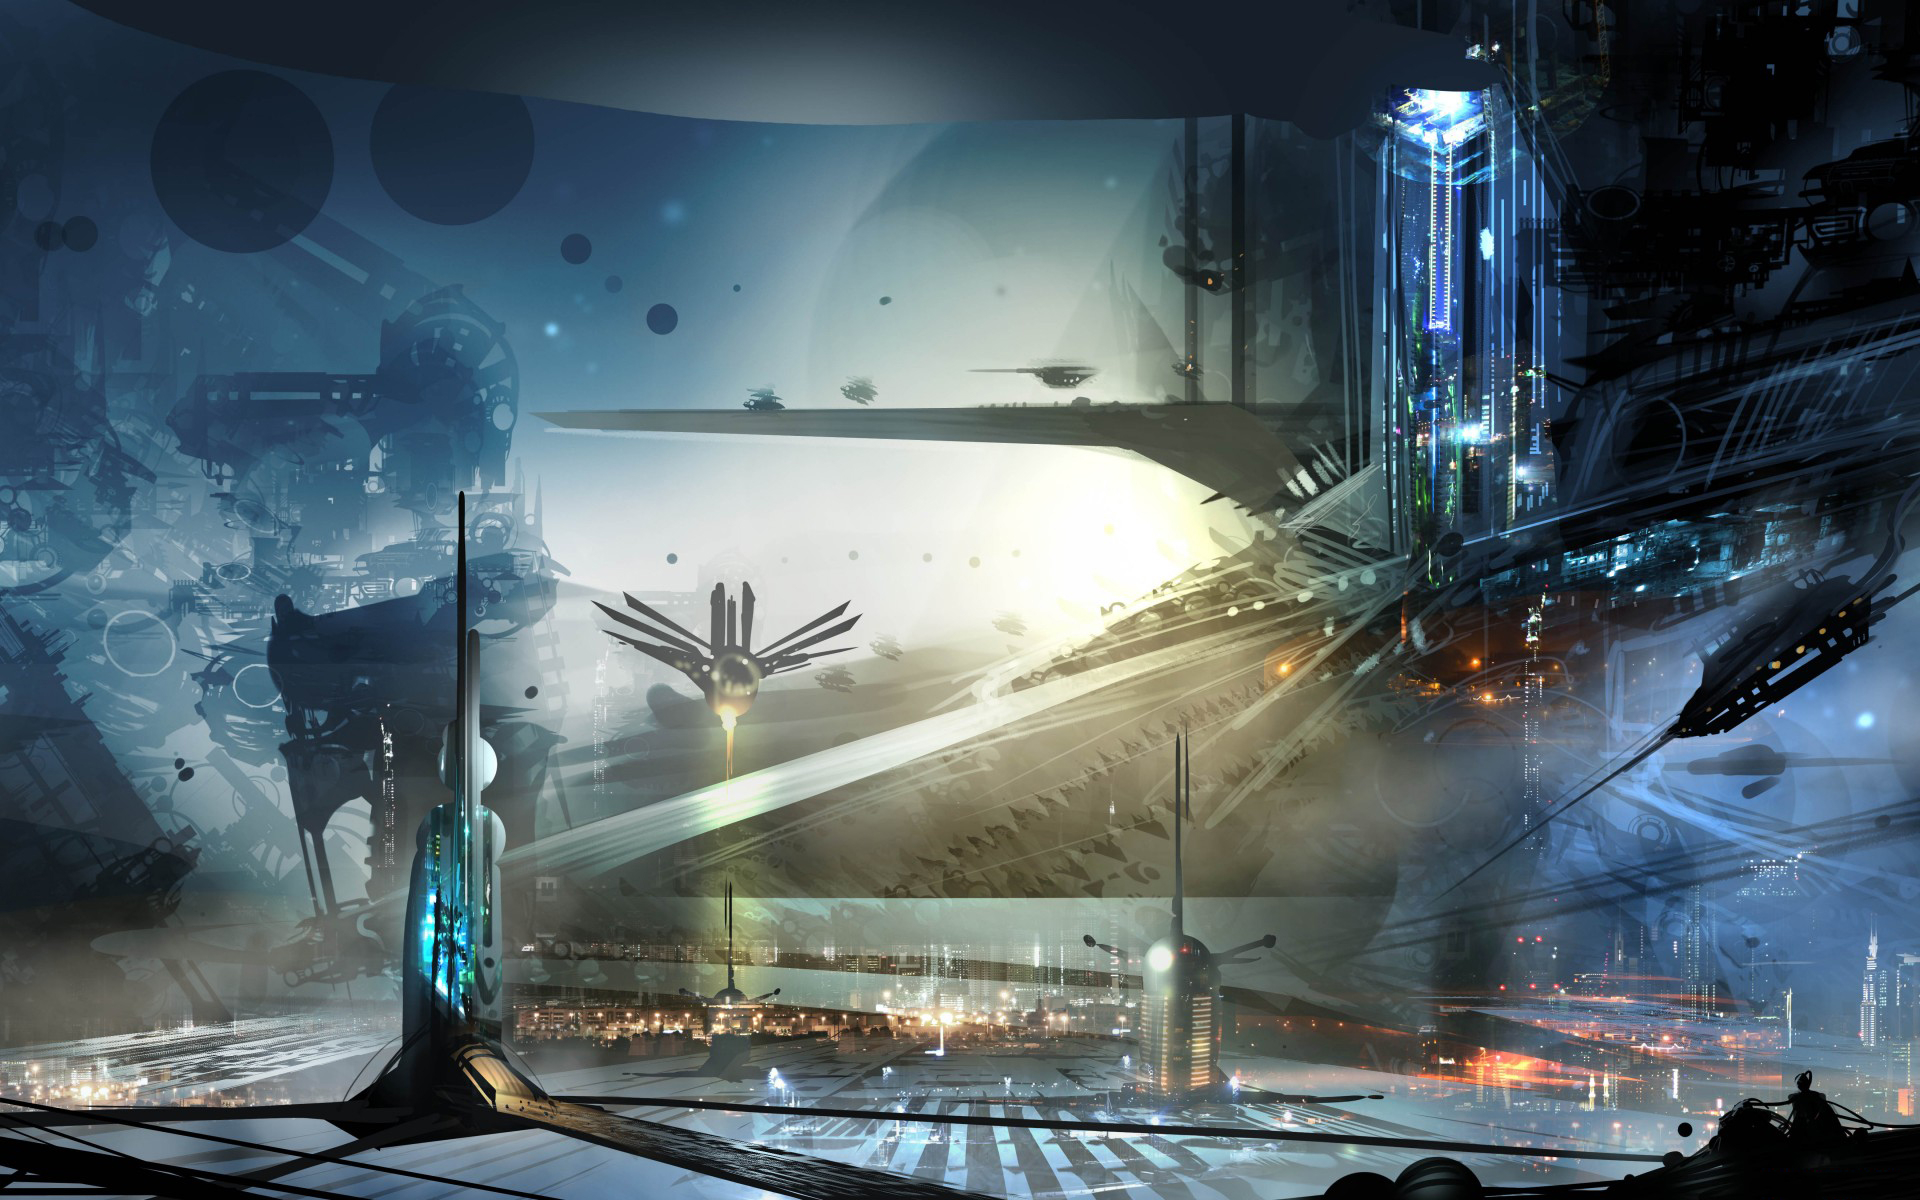 science fiction atlantis space base - photo #44